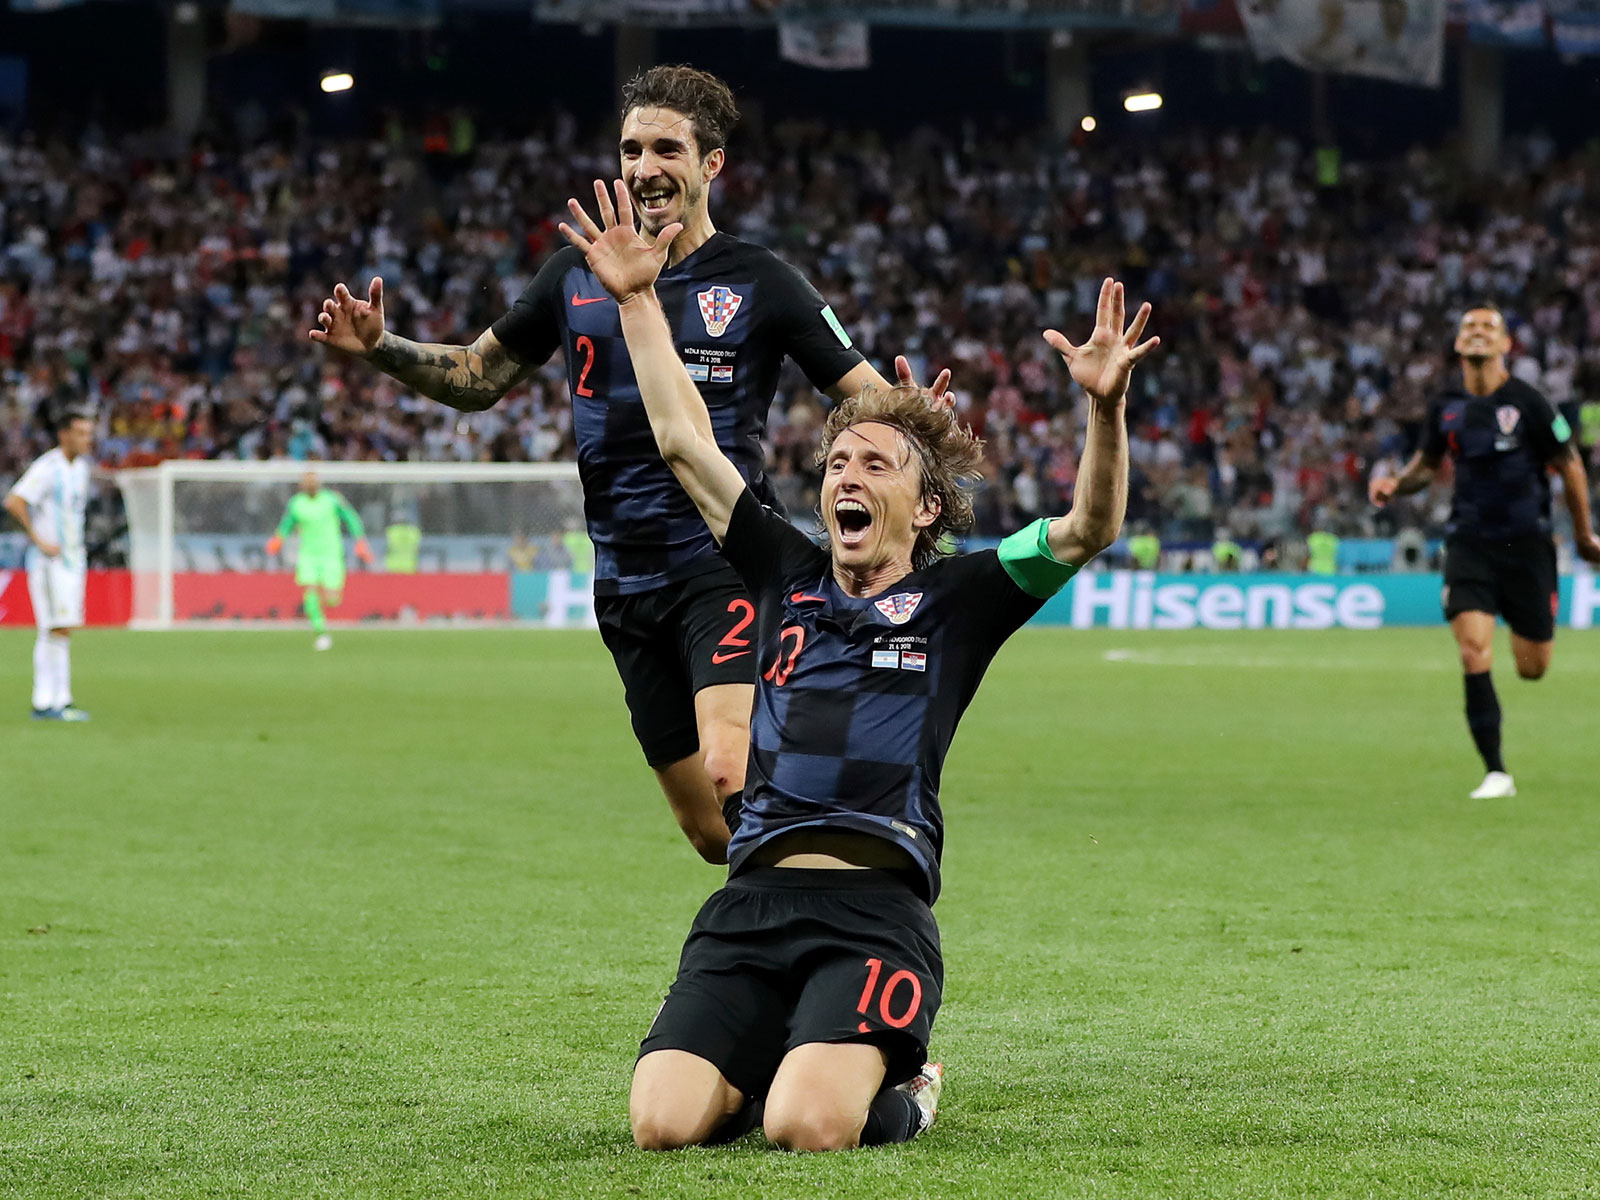 Luka Modric slides in celebration after a goal in Croatia's win over Argentina at the World Cup